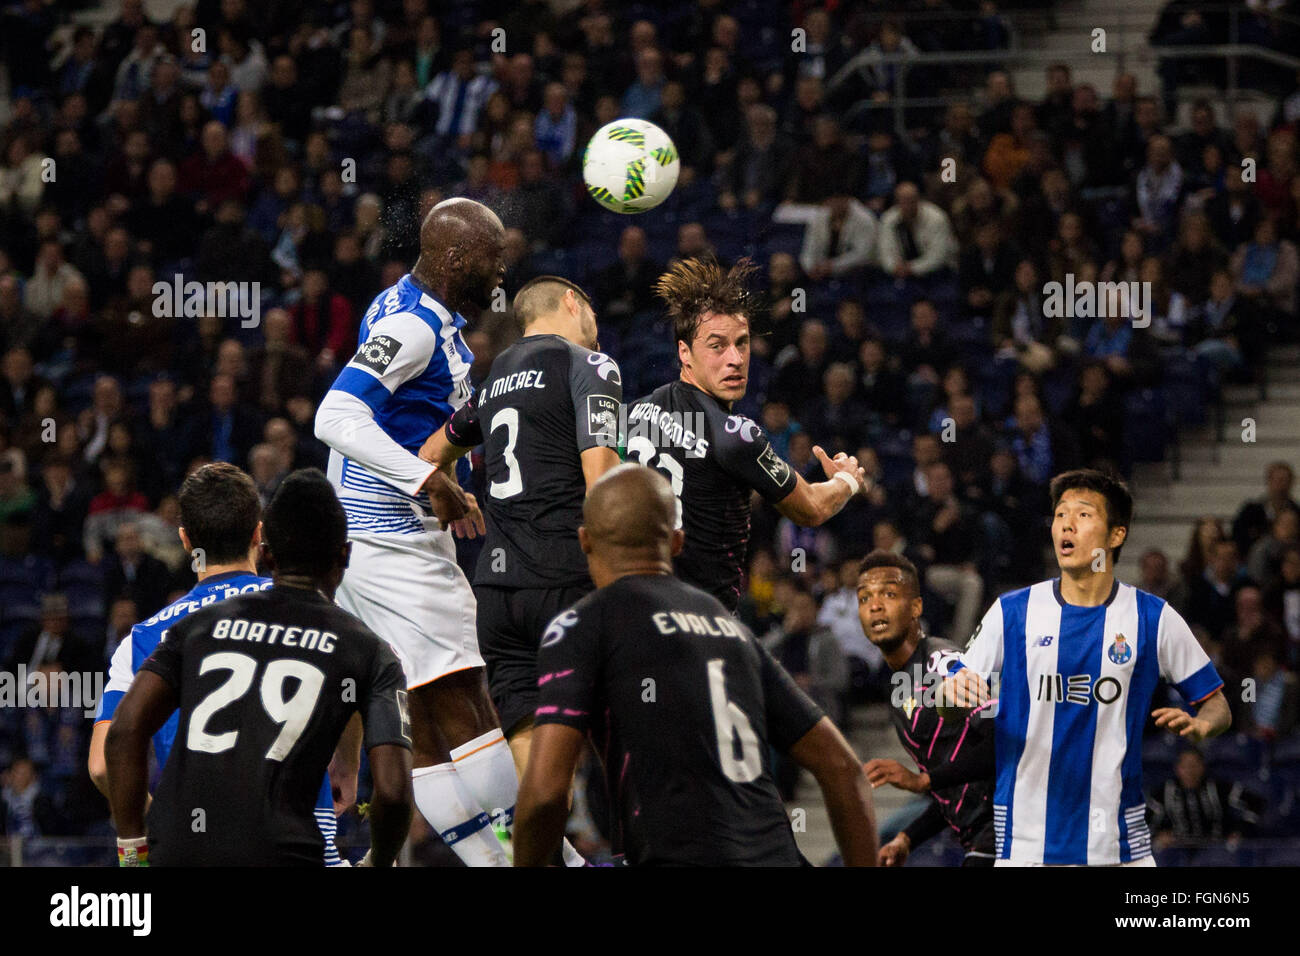 Dragon Stadium, Portugal. 21st February, 2016. FC Porto's player Danilo during the Premier League 2015/16 match - Stock Image